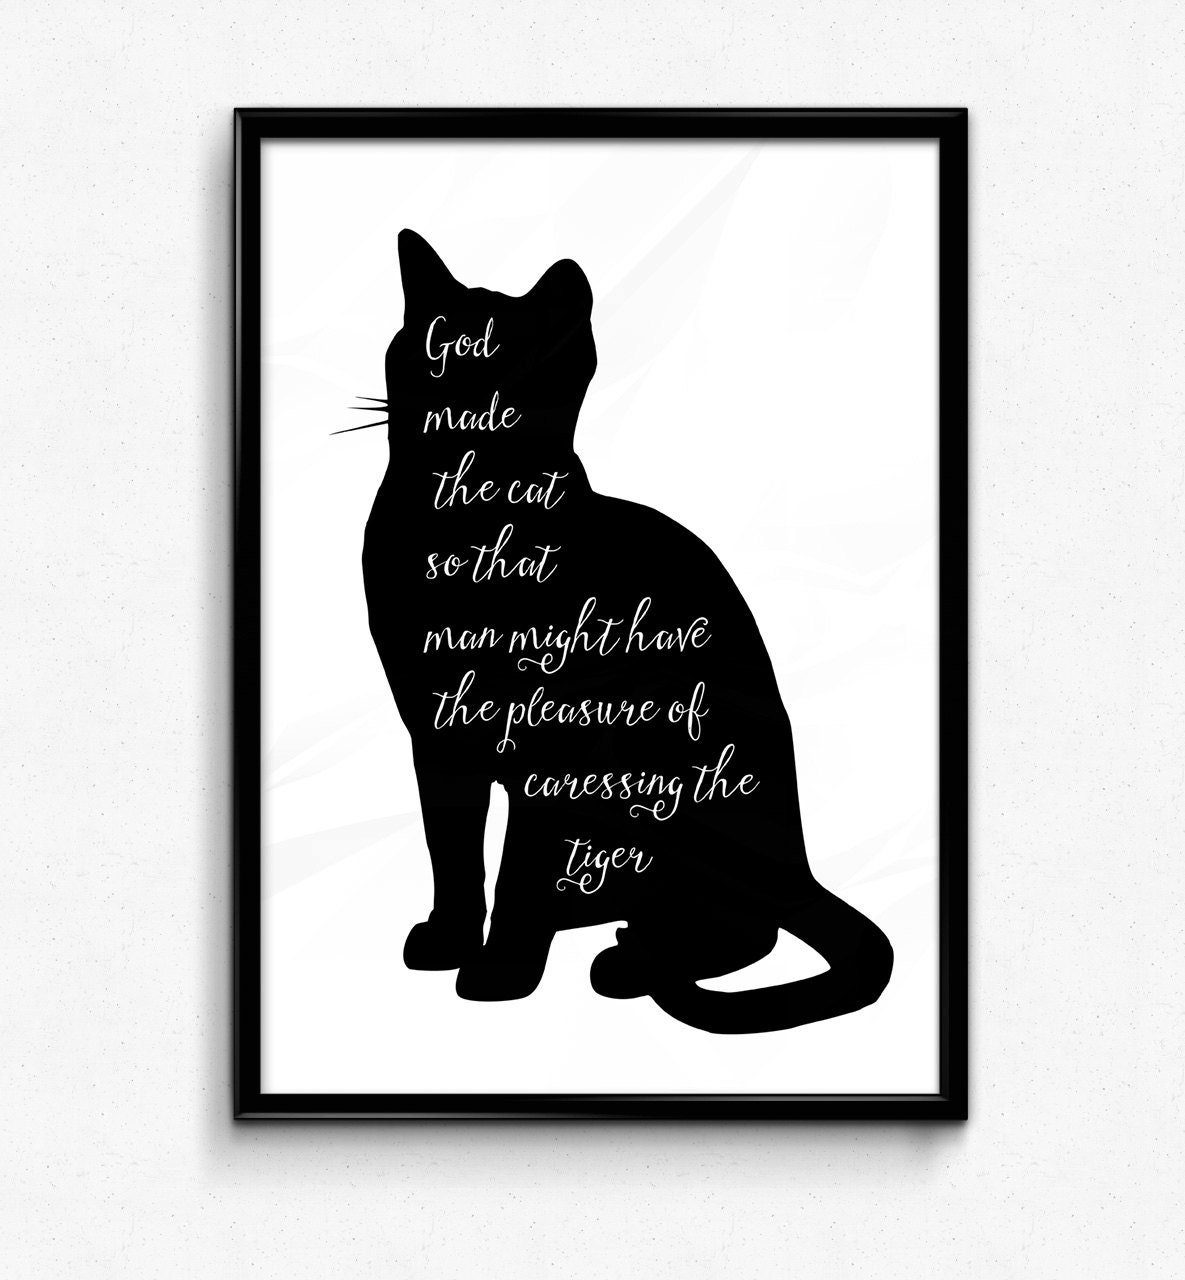 Wall Art Metal Sayings : Scandinavian wall art god made the cat